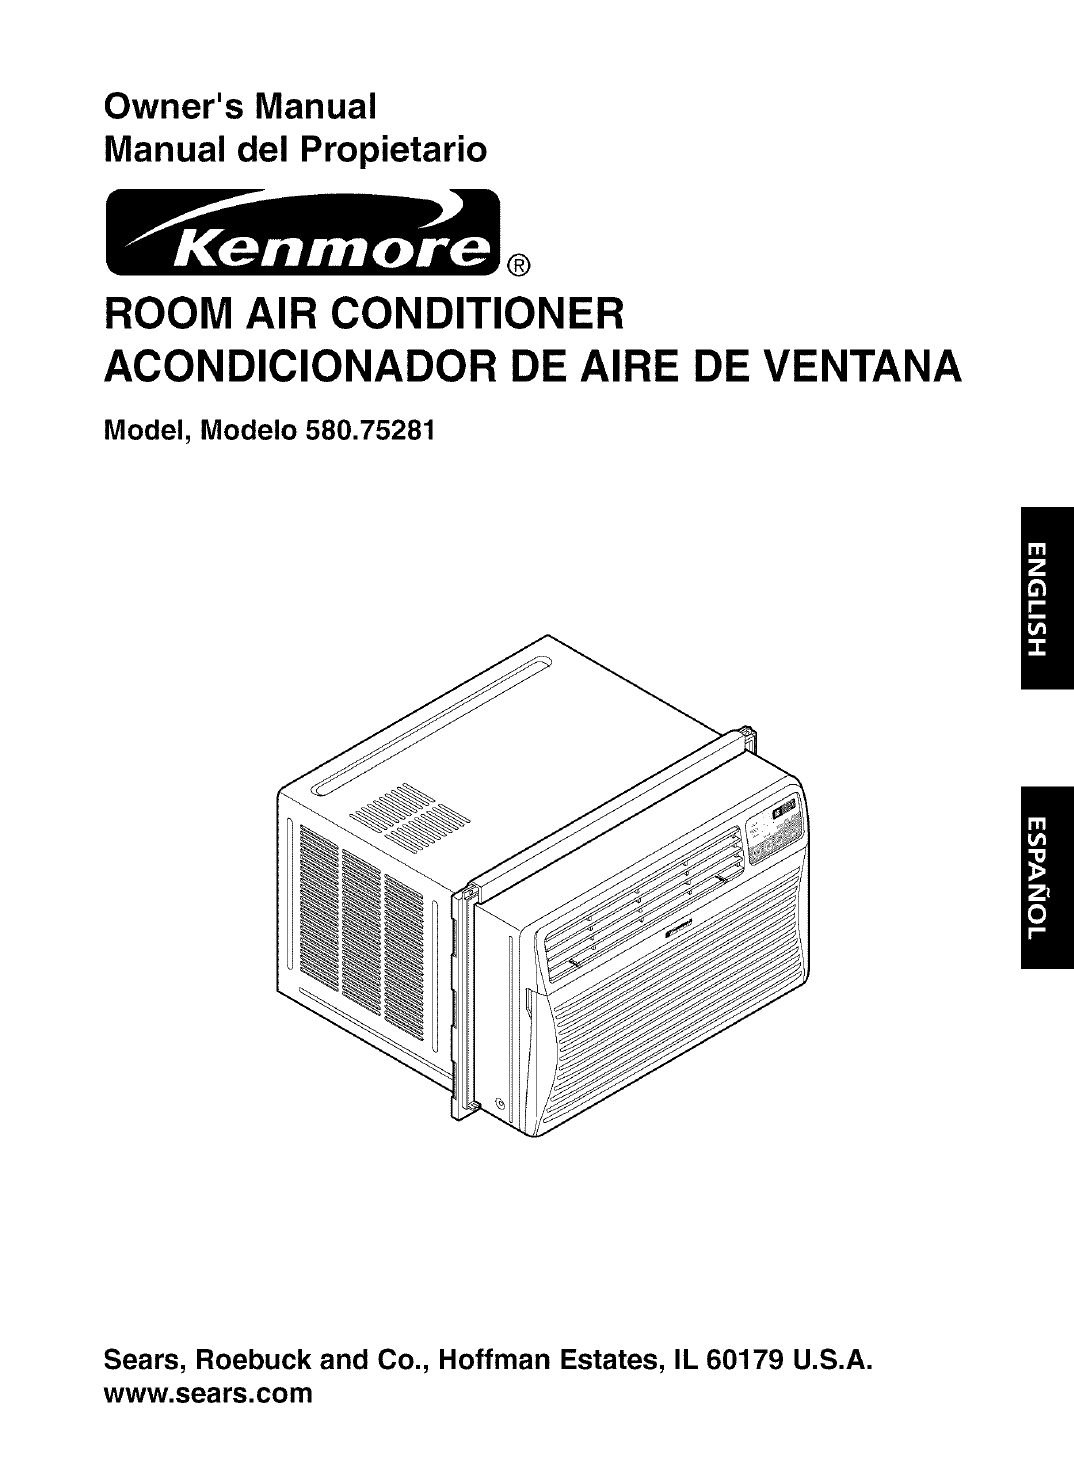 #666666 Kenmore Air Conditioner 580.75281 User Guide  Highest Rated 12746 Kenmore Room Air Conditioner Model 580 img with 1074x1472 px on helpvideos.info - Air Conditioners, Air Coolers and more